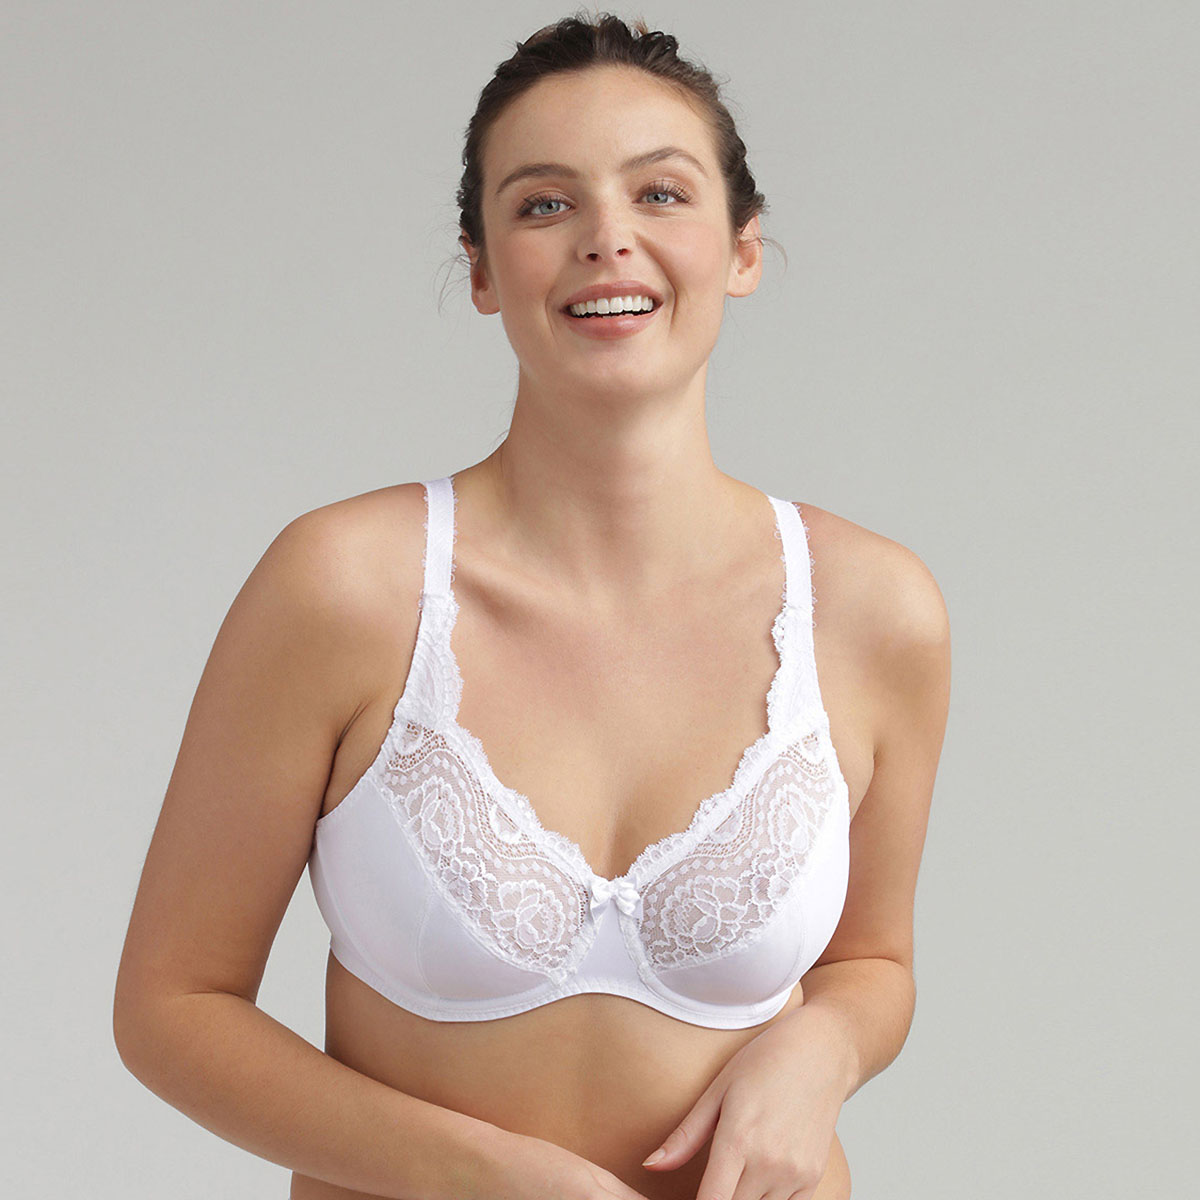 Full Cup Bra in White - Flower Elegance Micro, , PLAYTEX